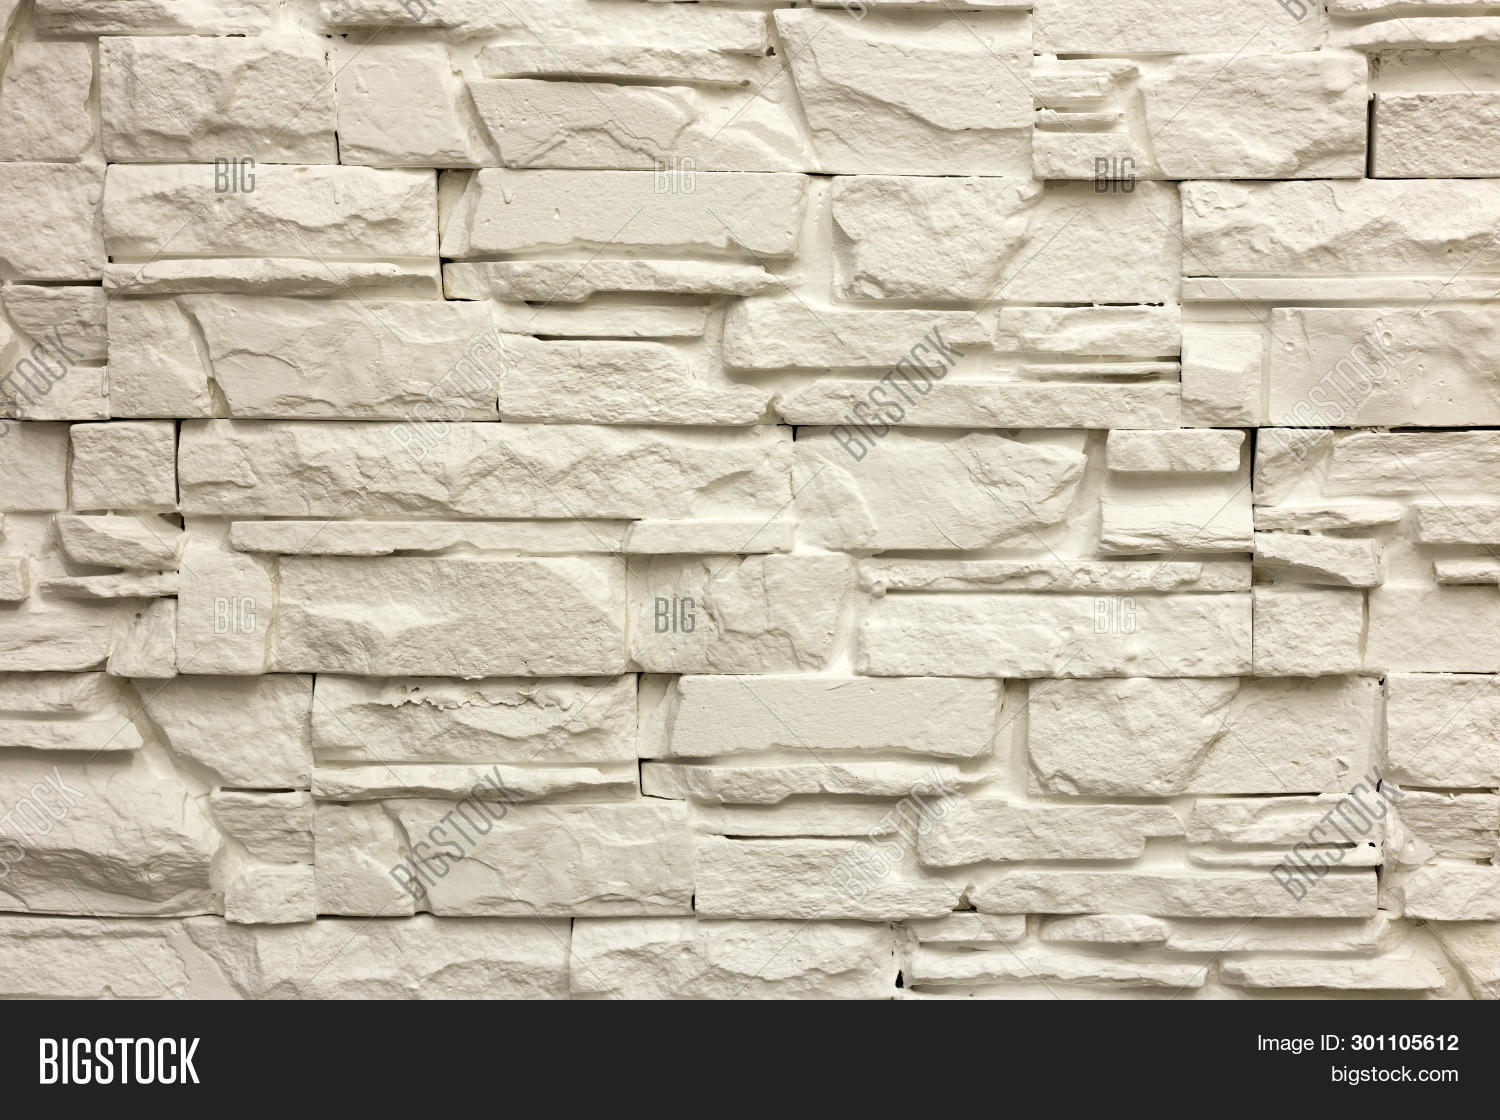 abstract,architecture,block,brick,bricklaying,brickwork,building,cement,concrete,construction,copy,design,detail,dirty,effect,exterior,facade,fence,grunge,horizontal,isolated,lasting,light,limestone,masonry,material,mortar,old,outdoor,paint,pattern,plaster,rectangles,retro,rough,row,solid,space,square,stone,structure,surface,texture,textured,view,vintage,wall,wallpaper,weathered,white